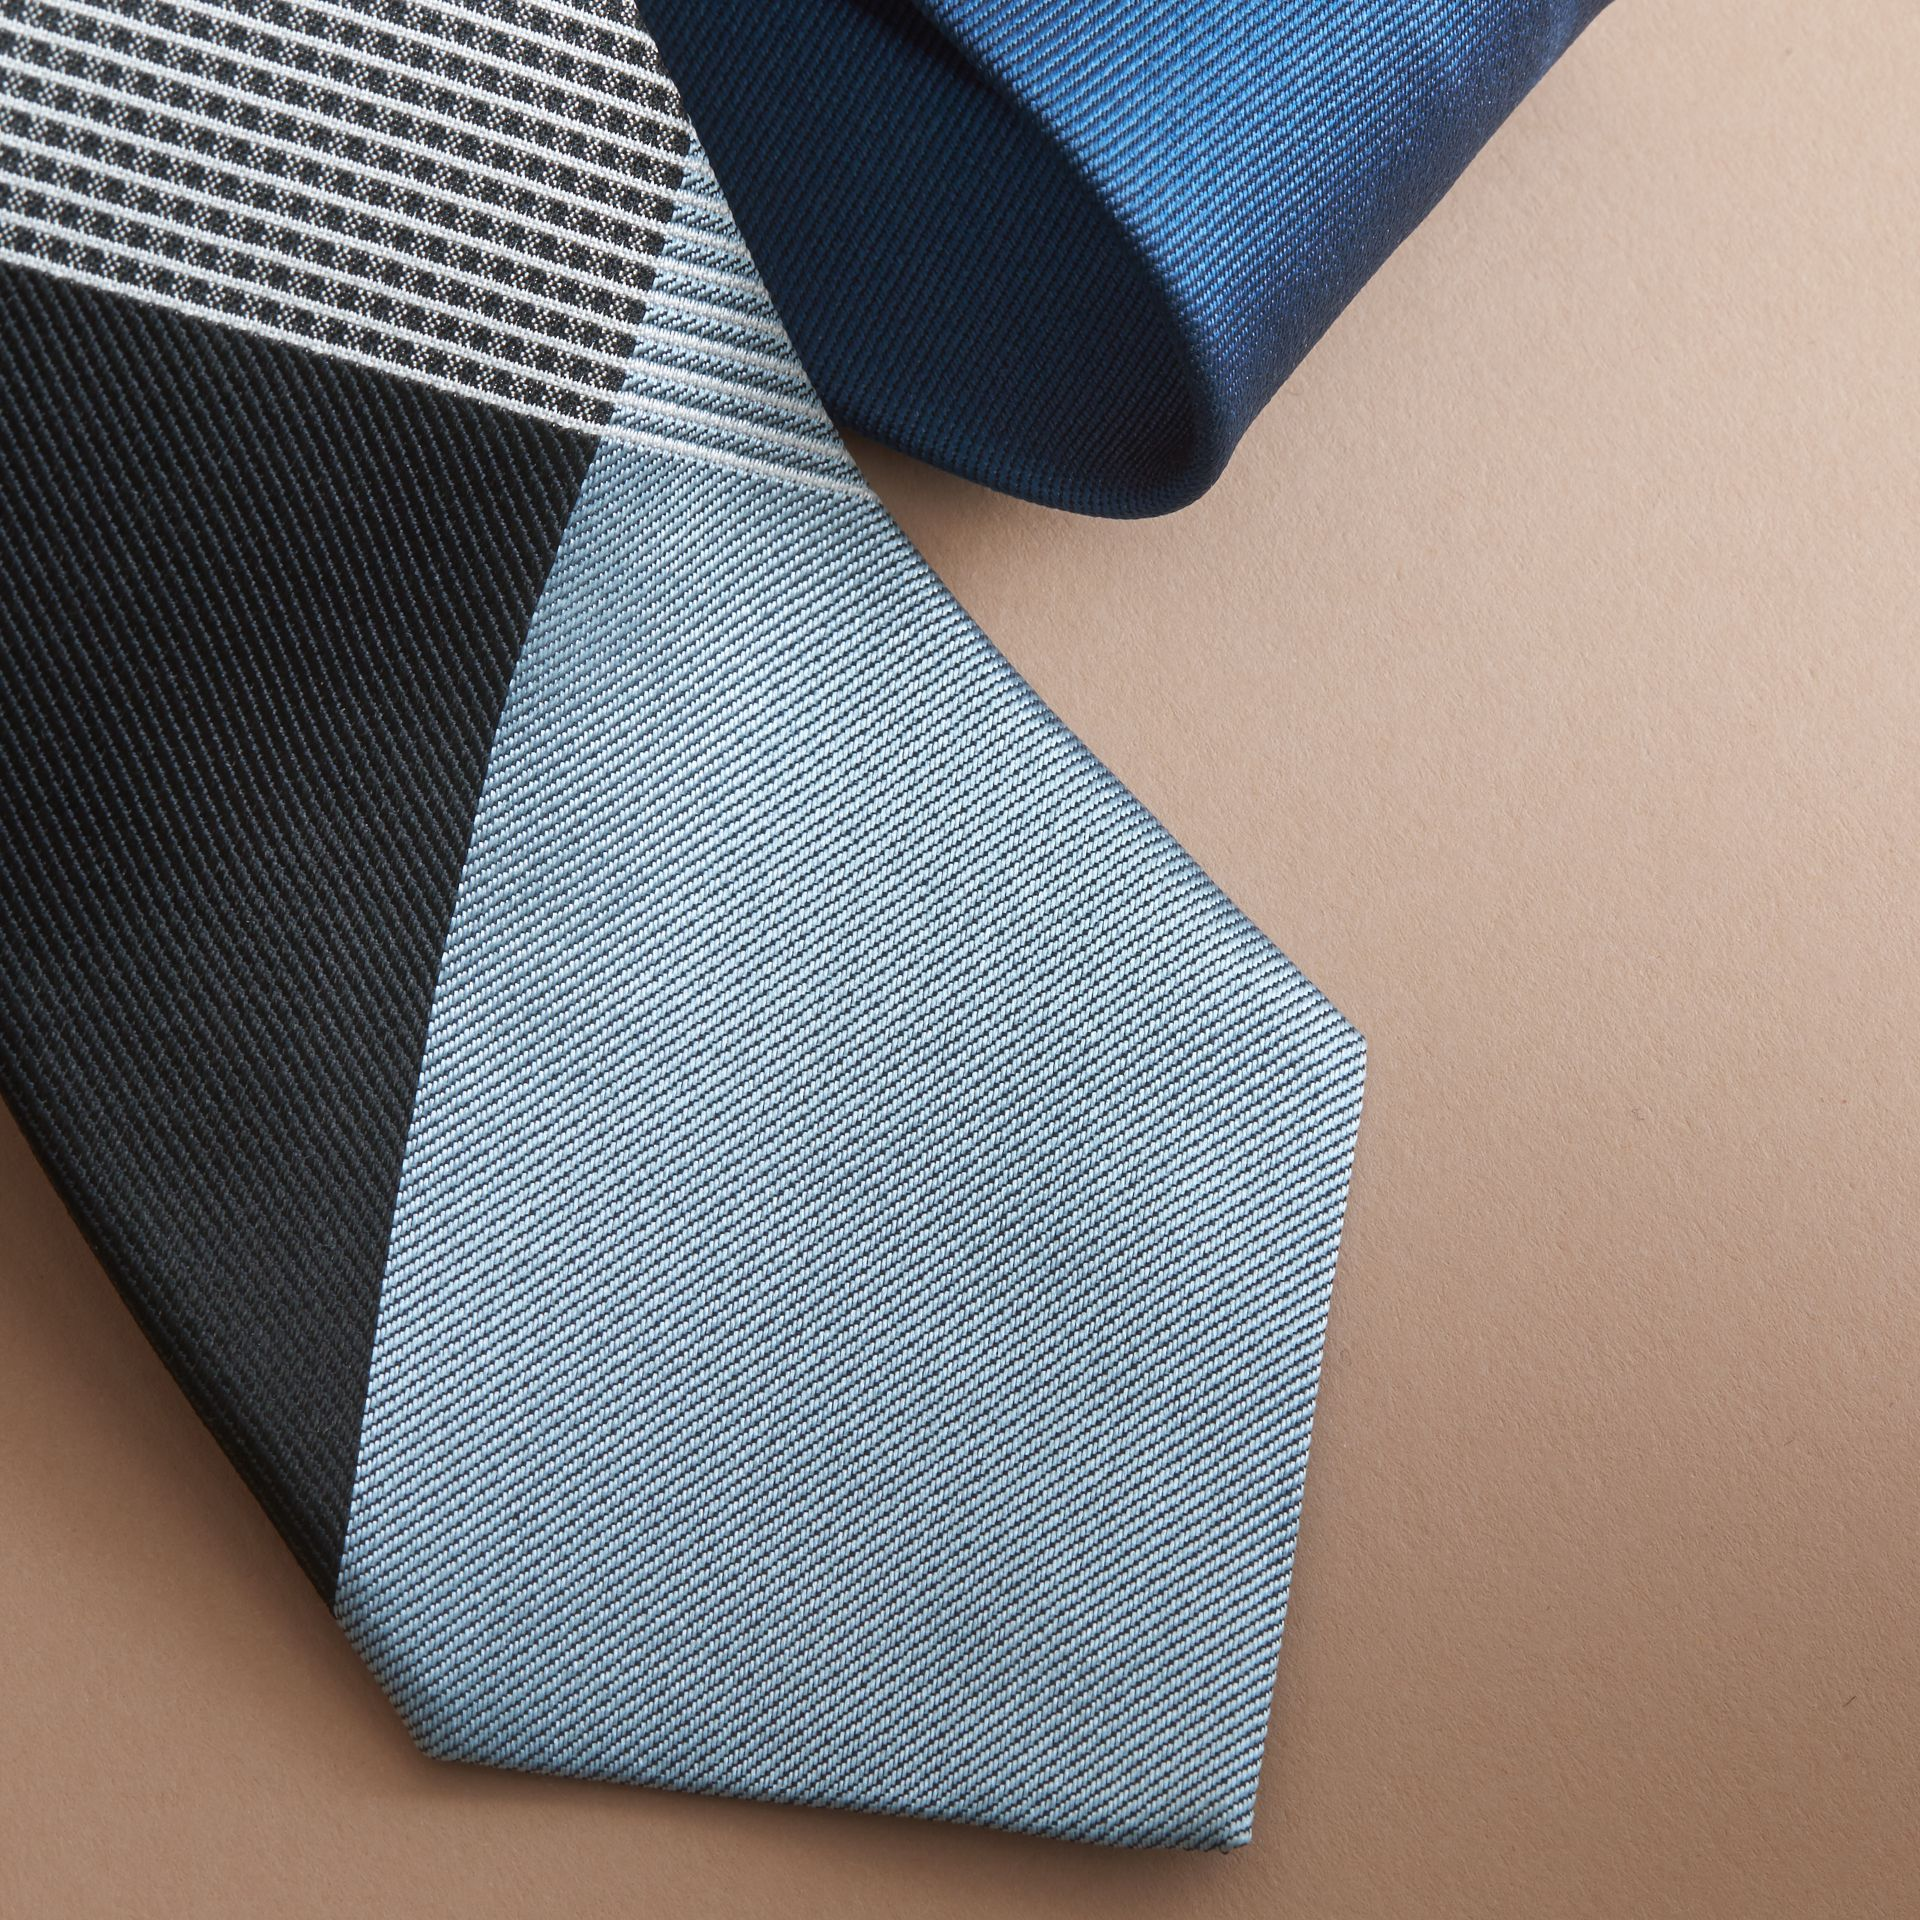 Modern Cut Gingham Check Silk Twill Jacquard Tie in Brilliant Navy - Men | Burberry - gallery image 2